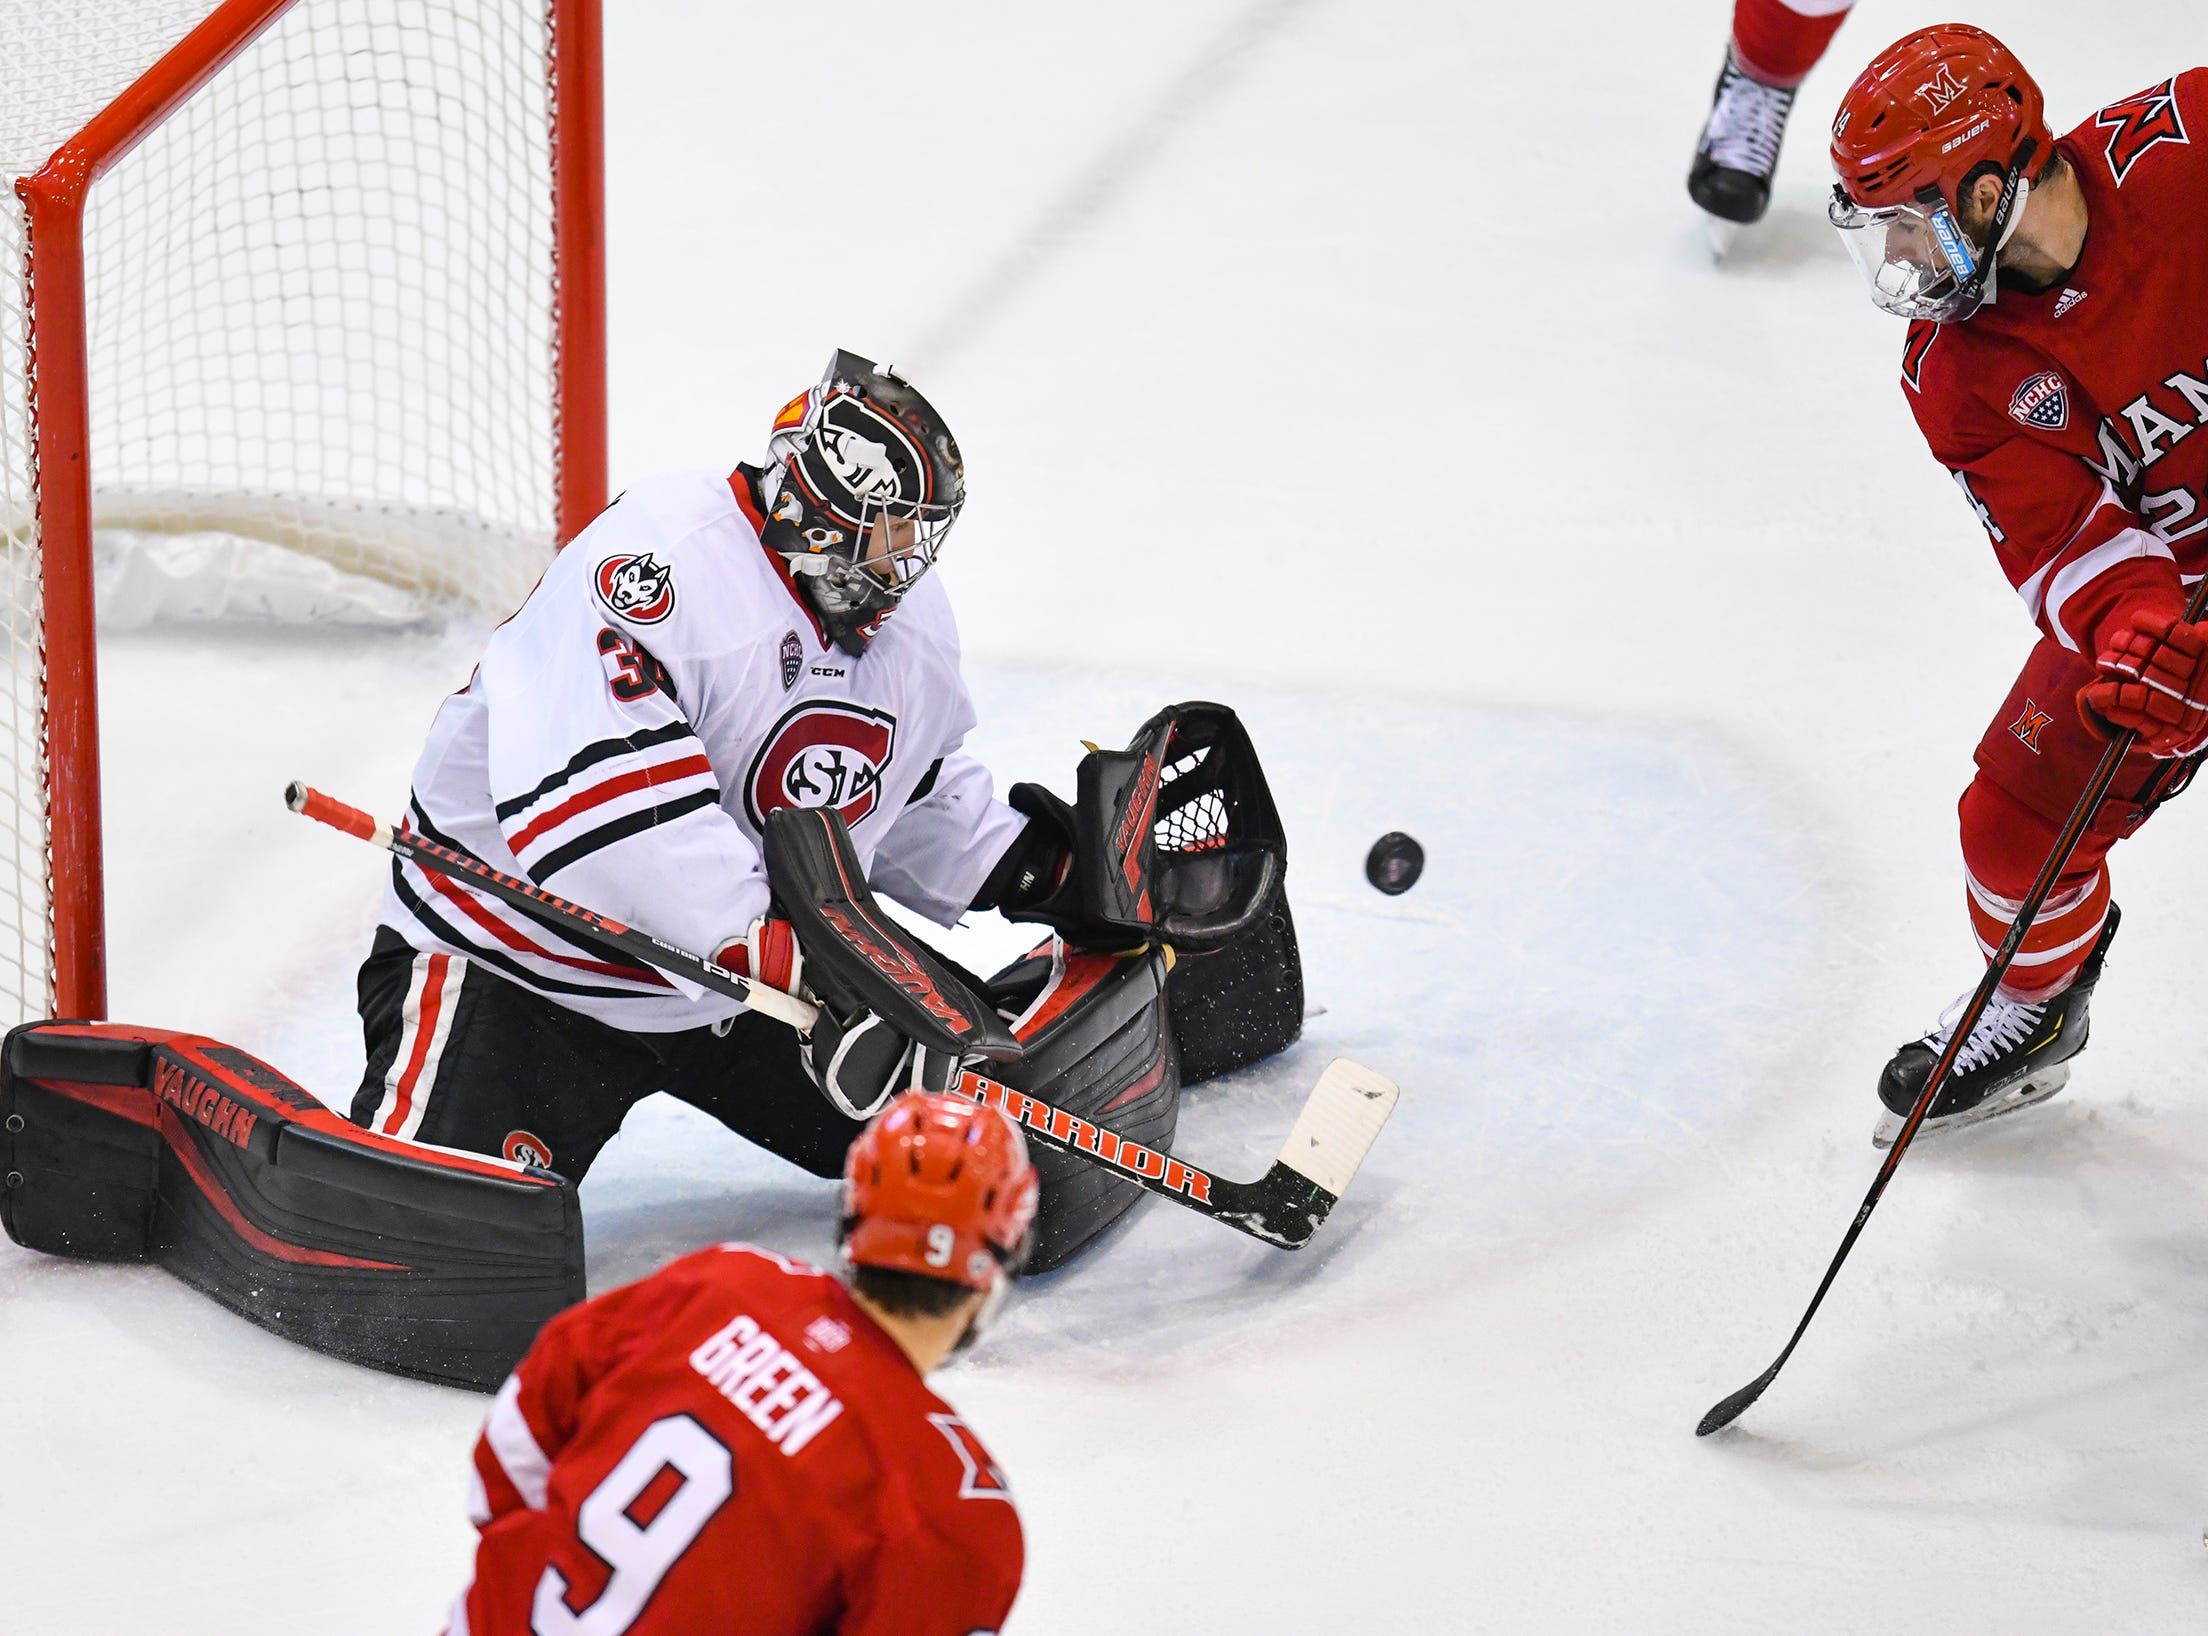 St. Cloud State goaltender David Hrenak makes a save during the second period of the Saturday, March 16 game at the Herb Brooks National Hockey Center in St. Cloud.